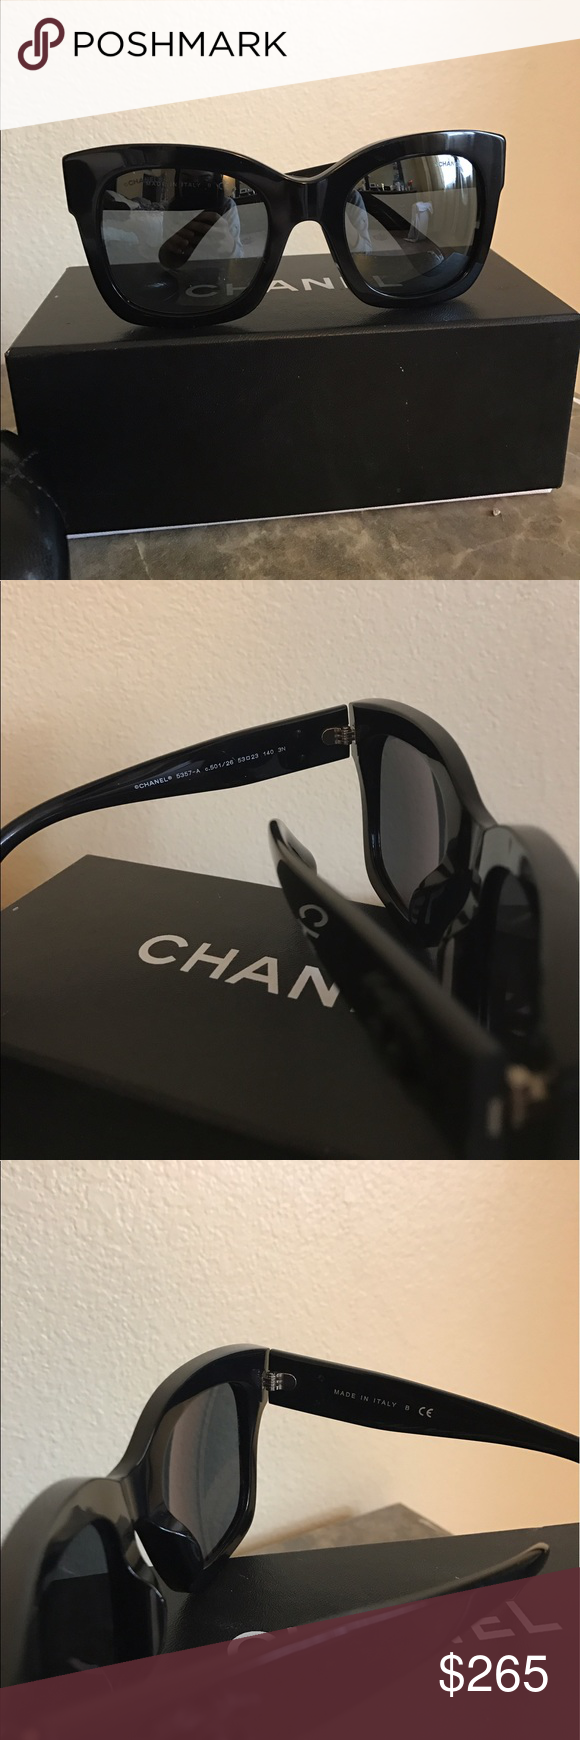 69f25a6c8e5 Chanel Sunglasses Selling Brand new pair of Chanel sunglasses. New  collection. Great frame for larger face shape. Black frame with silver  reflective lenses.